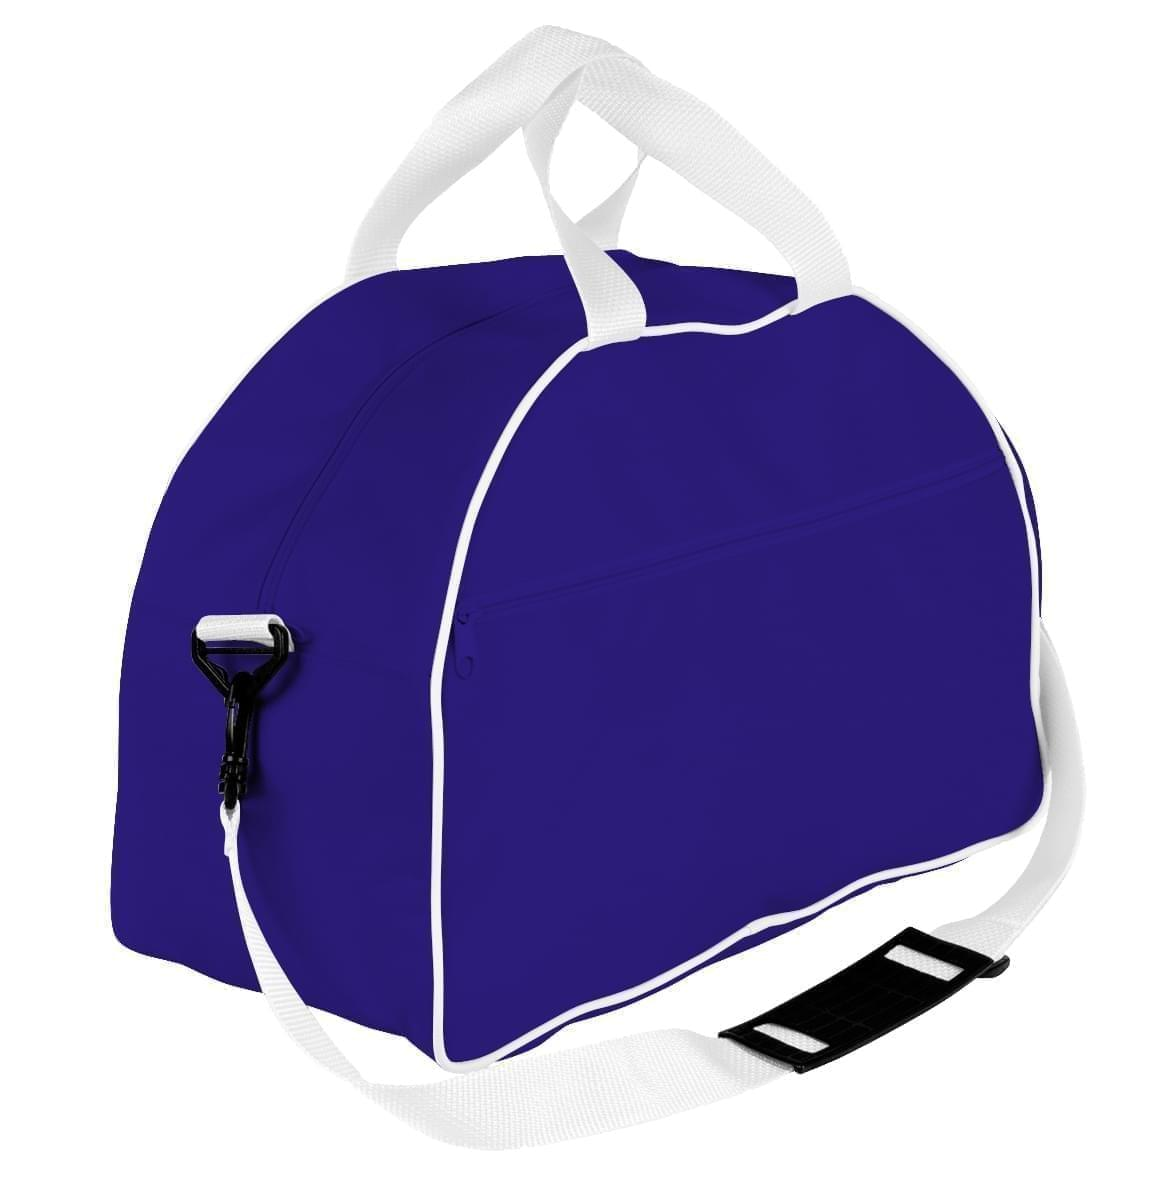 USA Made Nylon Poly Weekender Duffel Bags, Purple-White, 6PKV32JAY4